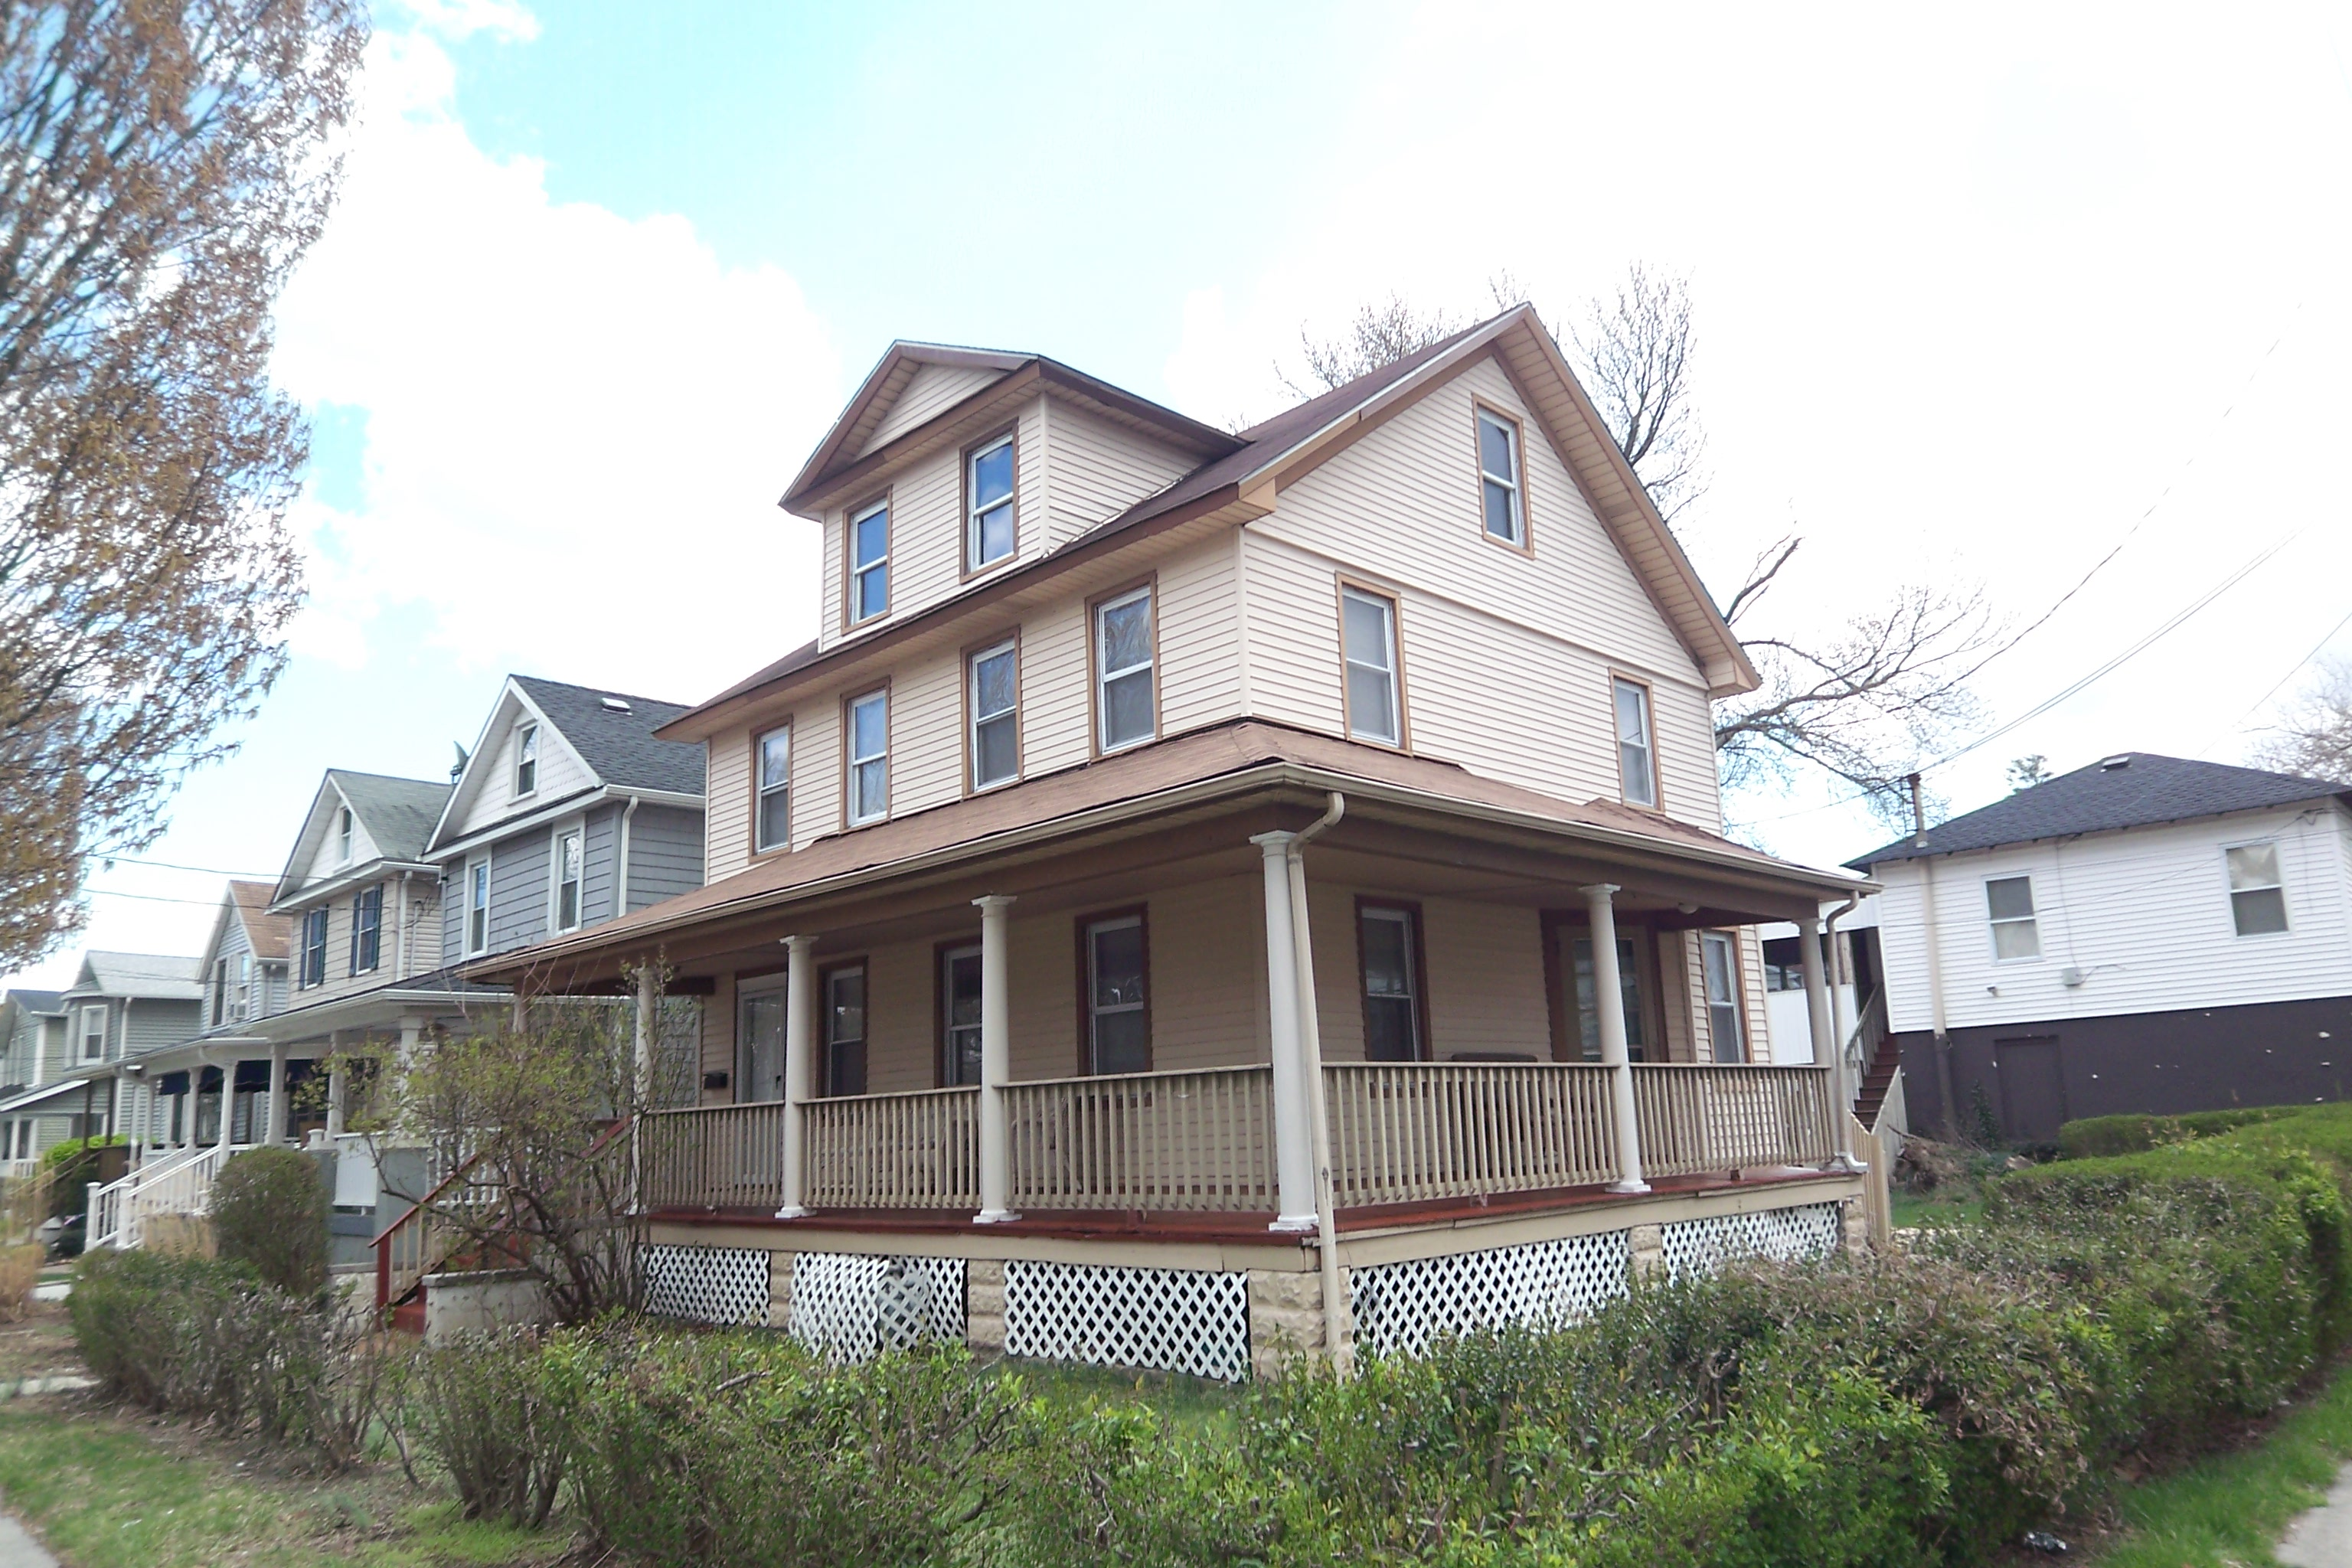 Multi-Family Home for Sale at Spacious Shore Colonial 519 13th Ave Belmar, New Jersey 07719 United States